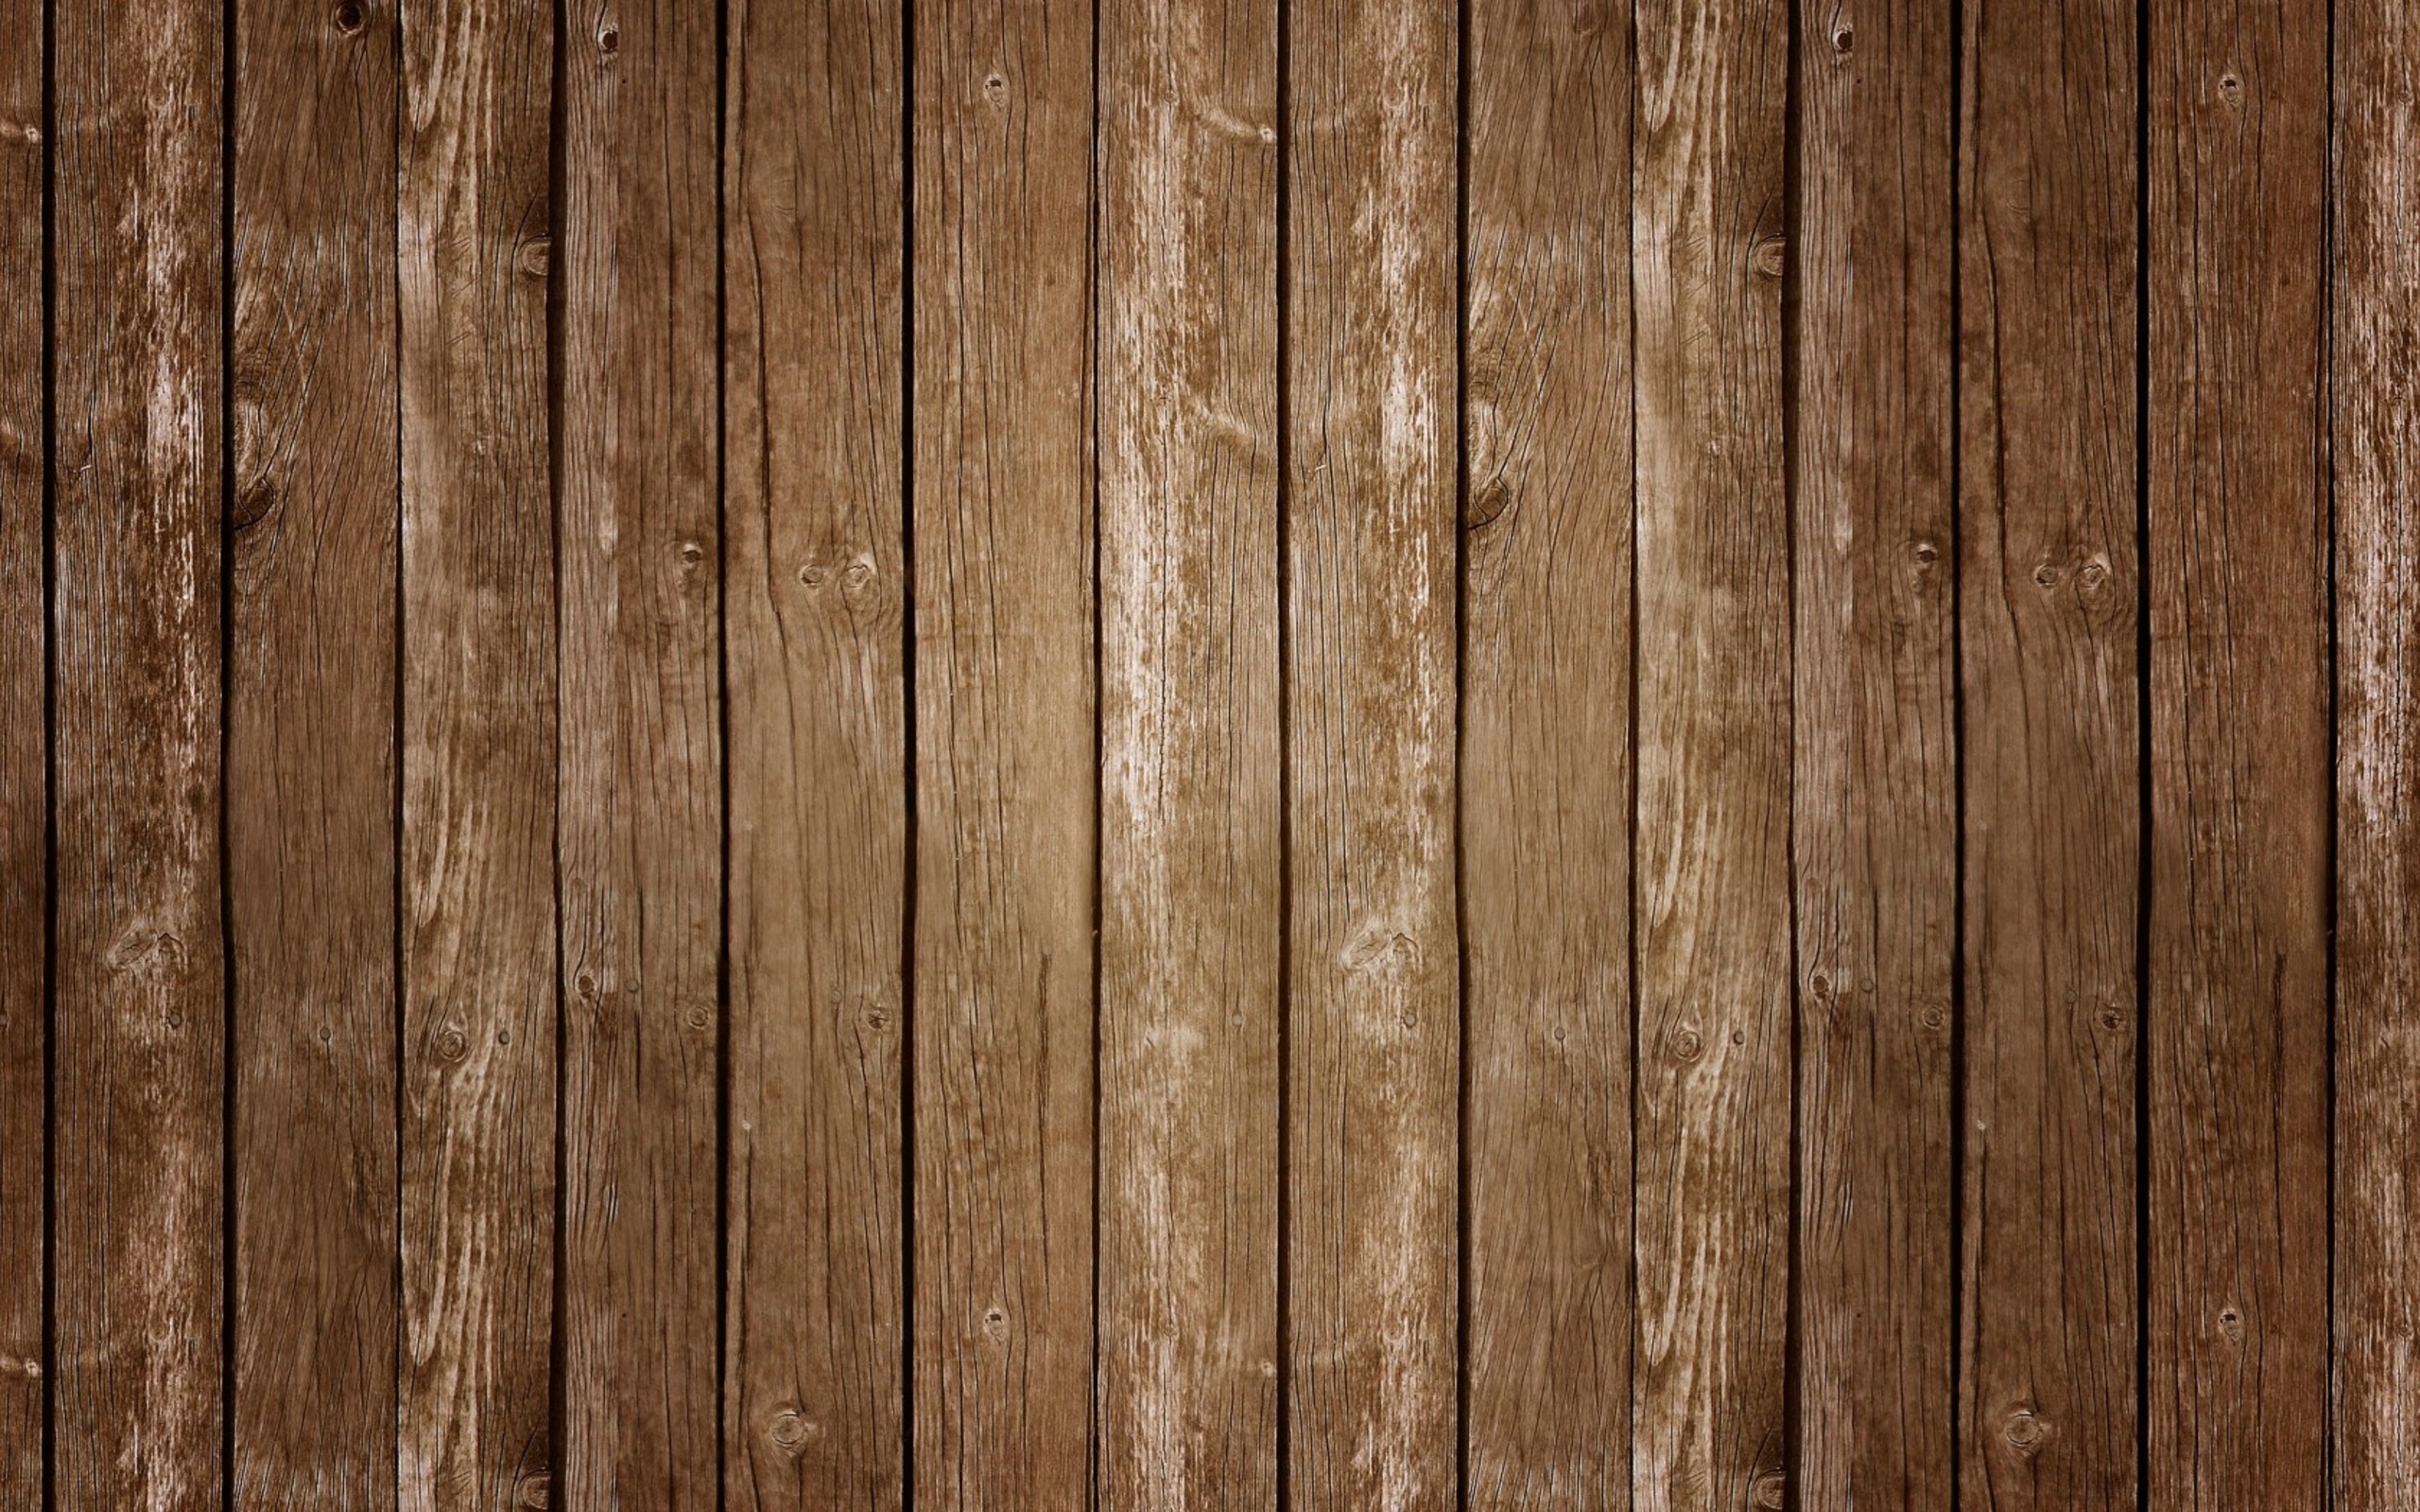 197 Wood HD Wallpapers